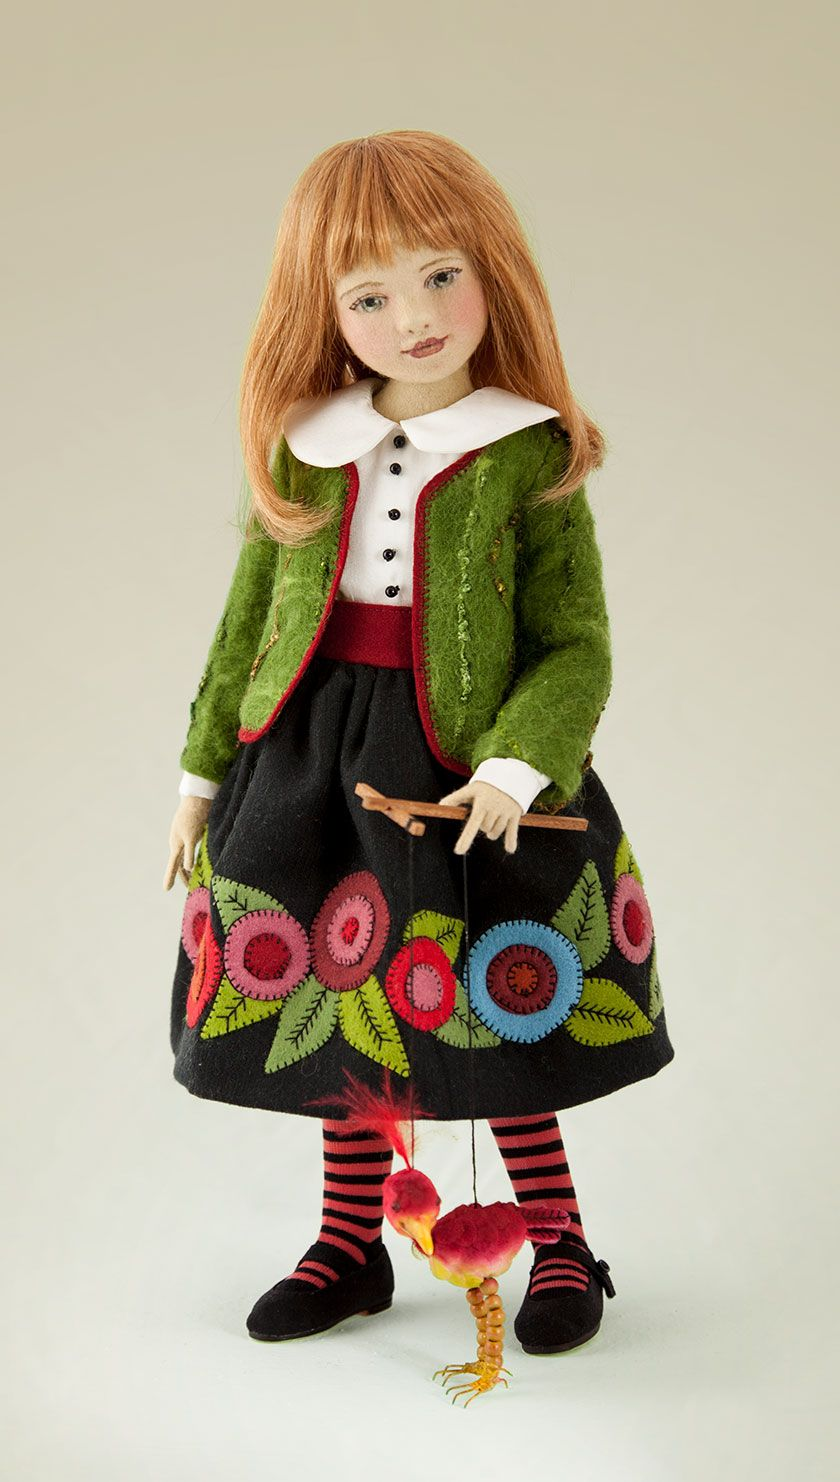 """""""Marcy and her new toy""""  Felt art doll by Maggie Iacono"""